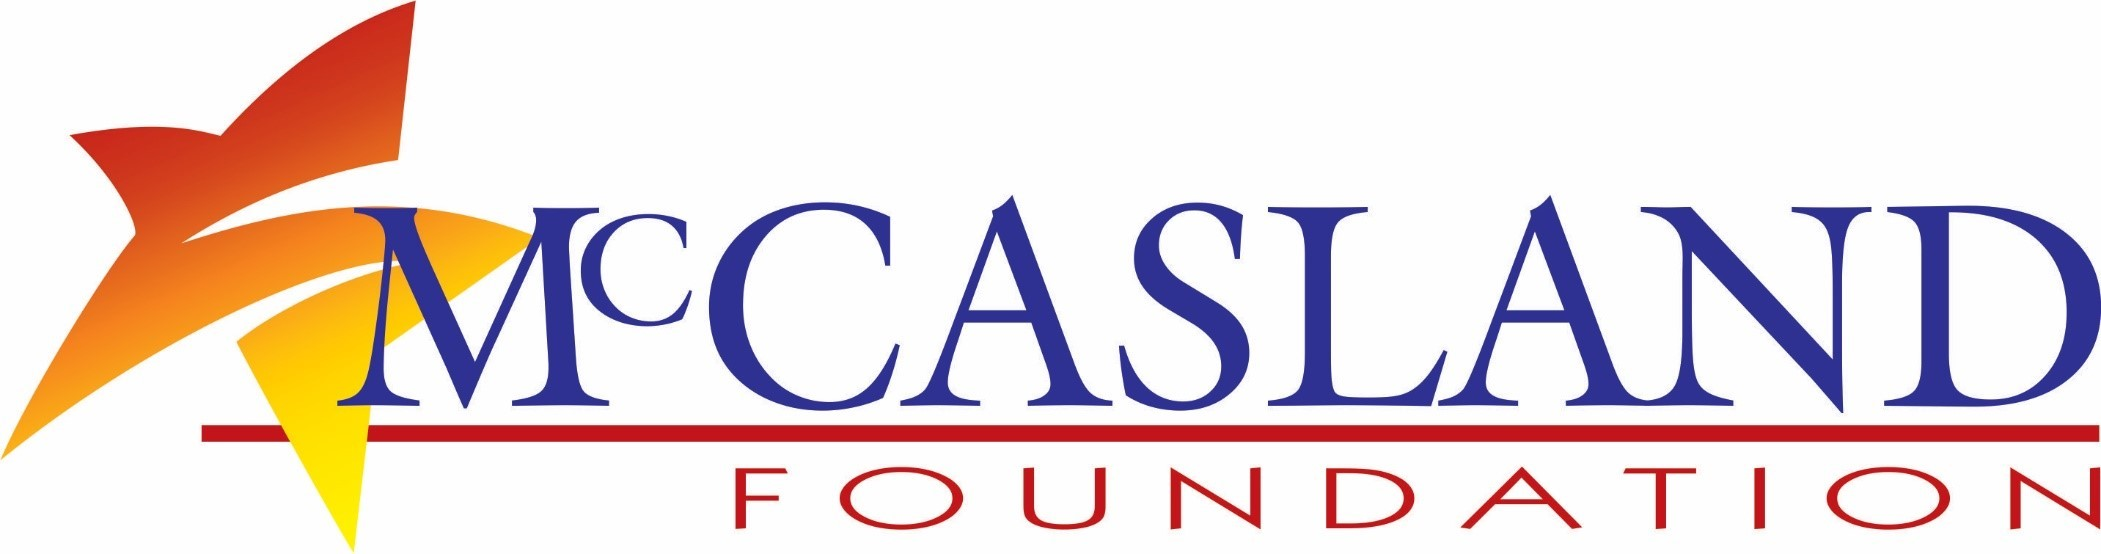 McCasland Foundation